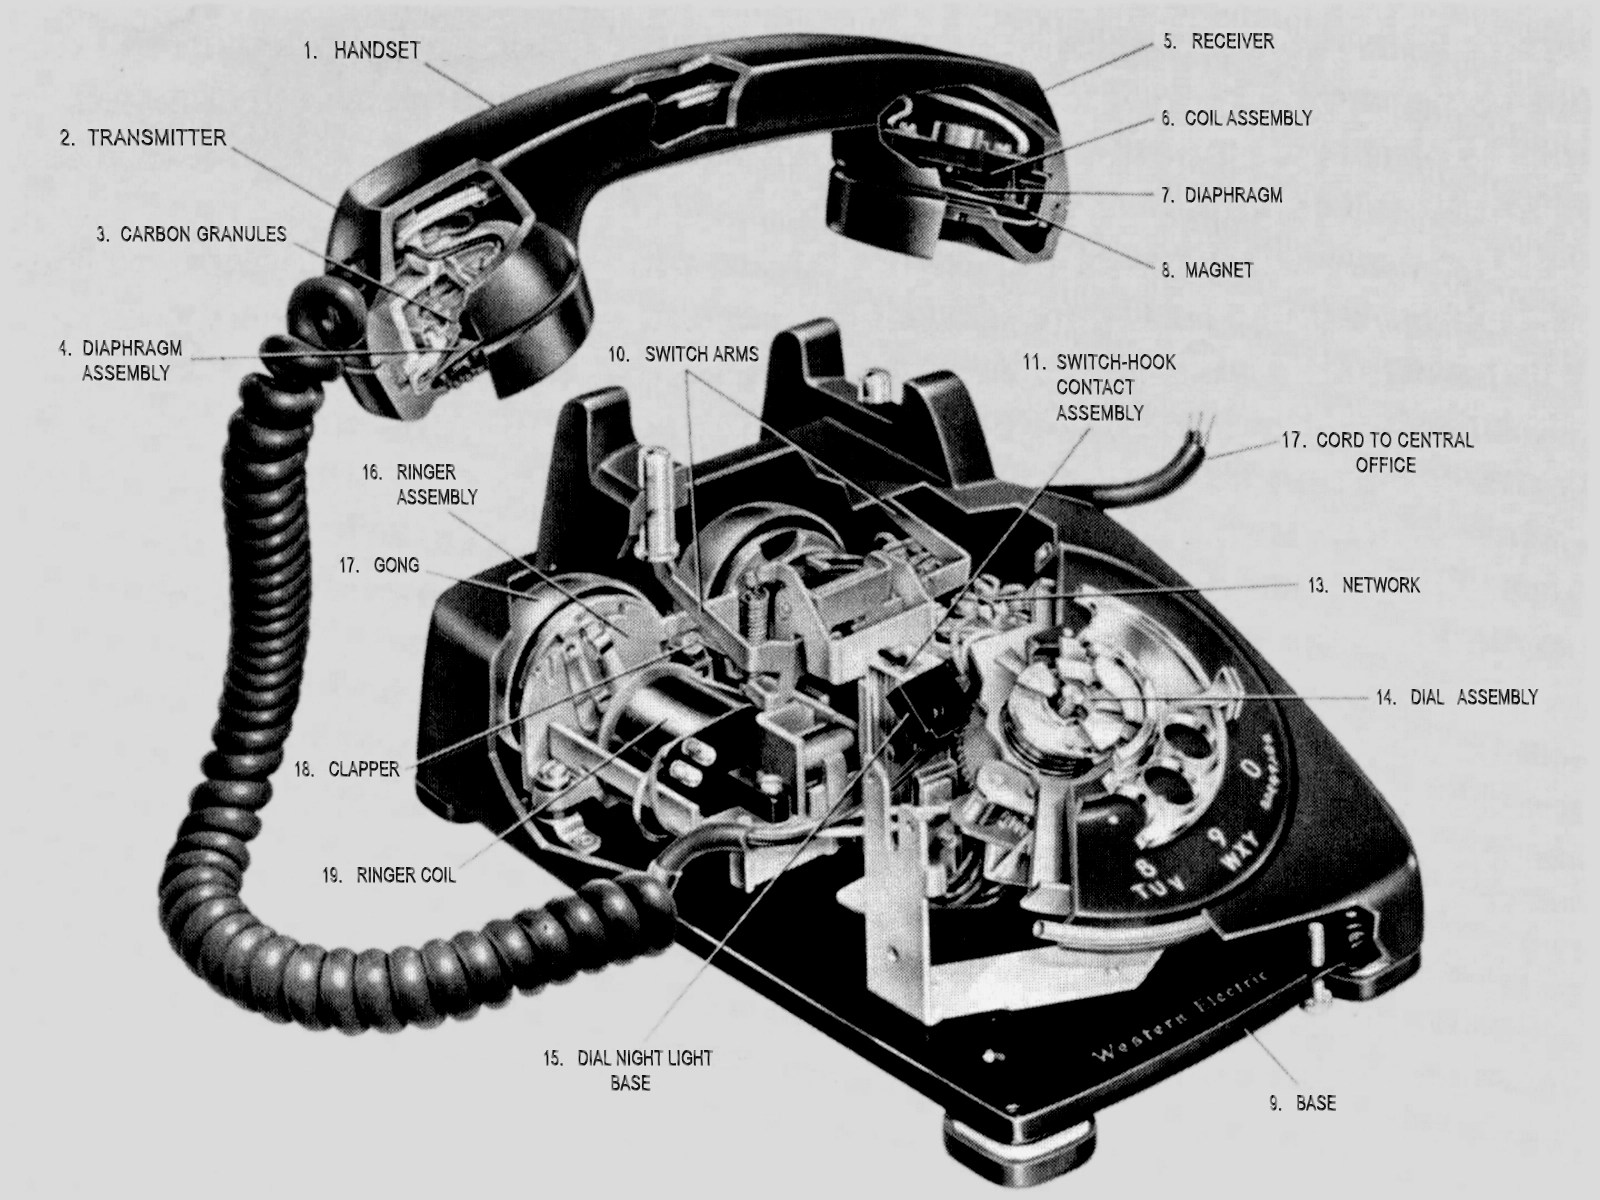 parts of a phone diagram manual e books Parts of a Rotary Dial Telephone u s tries to convict jeffrey sterling for retroactively classifiedantique_rotary_telephone_by_staticnuts